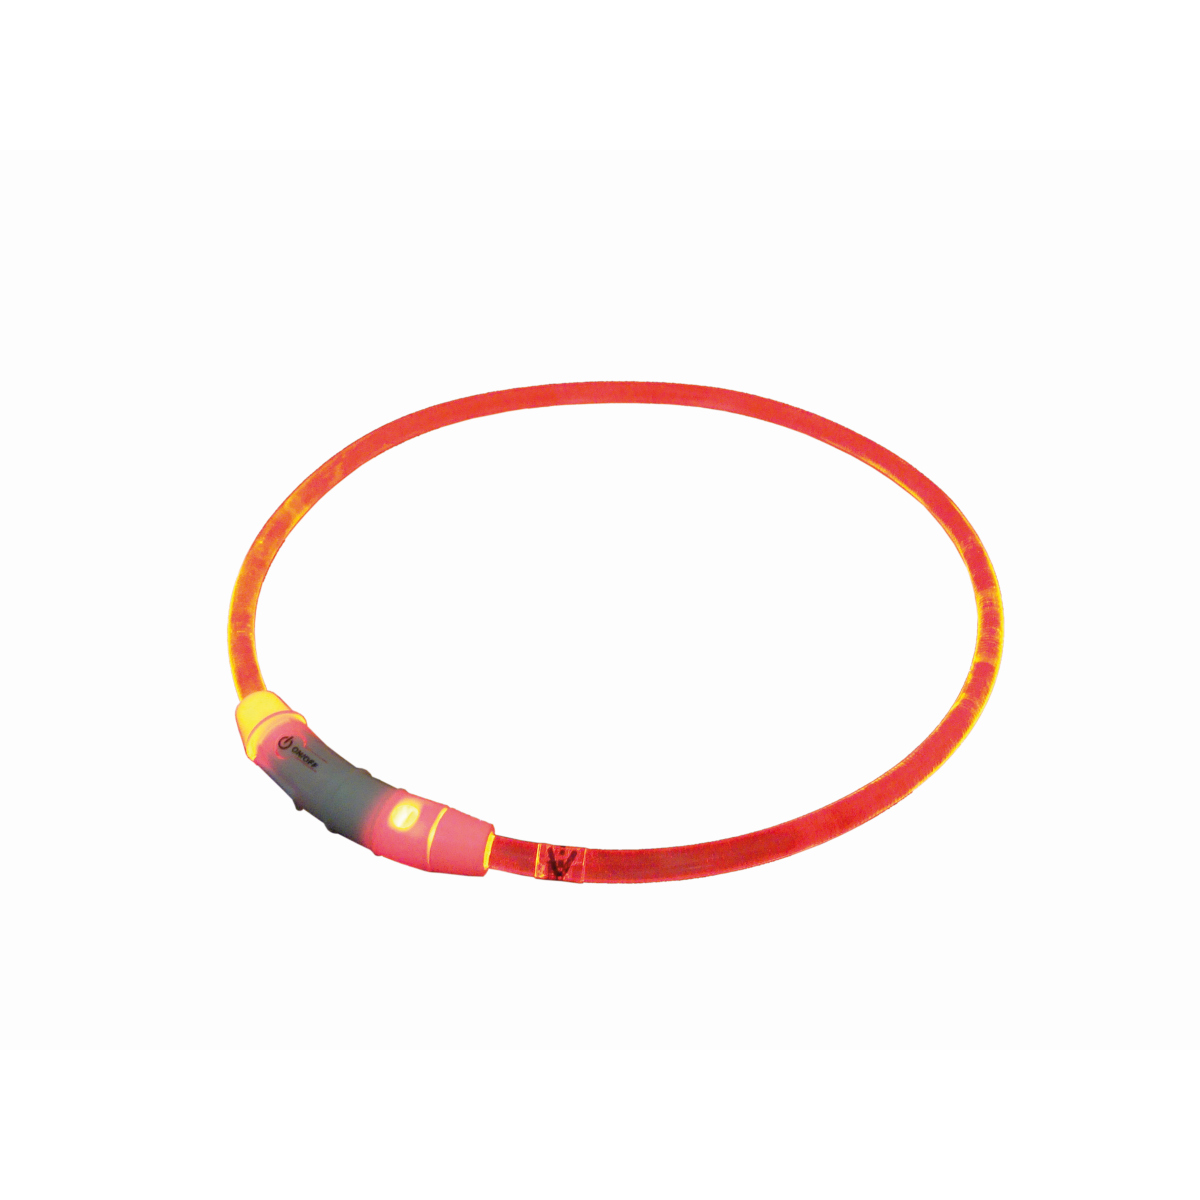 NB LICHTBAND VISIBLE L 00001